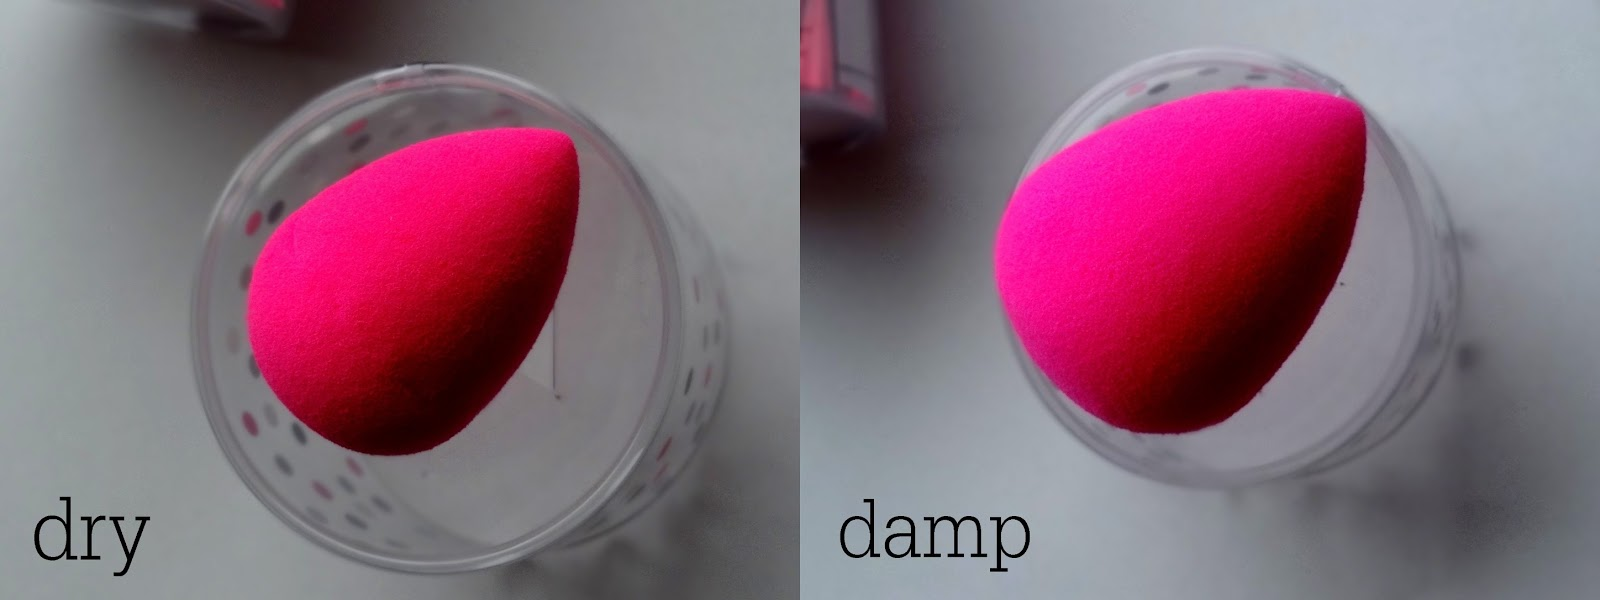 Beautyblender Makeup Sponge Wet/Dry Pictures Review